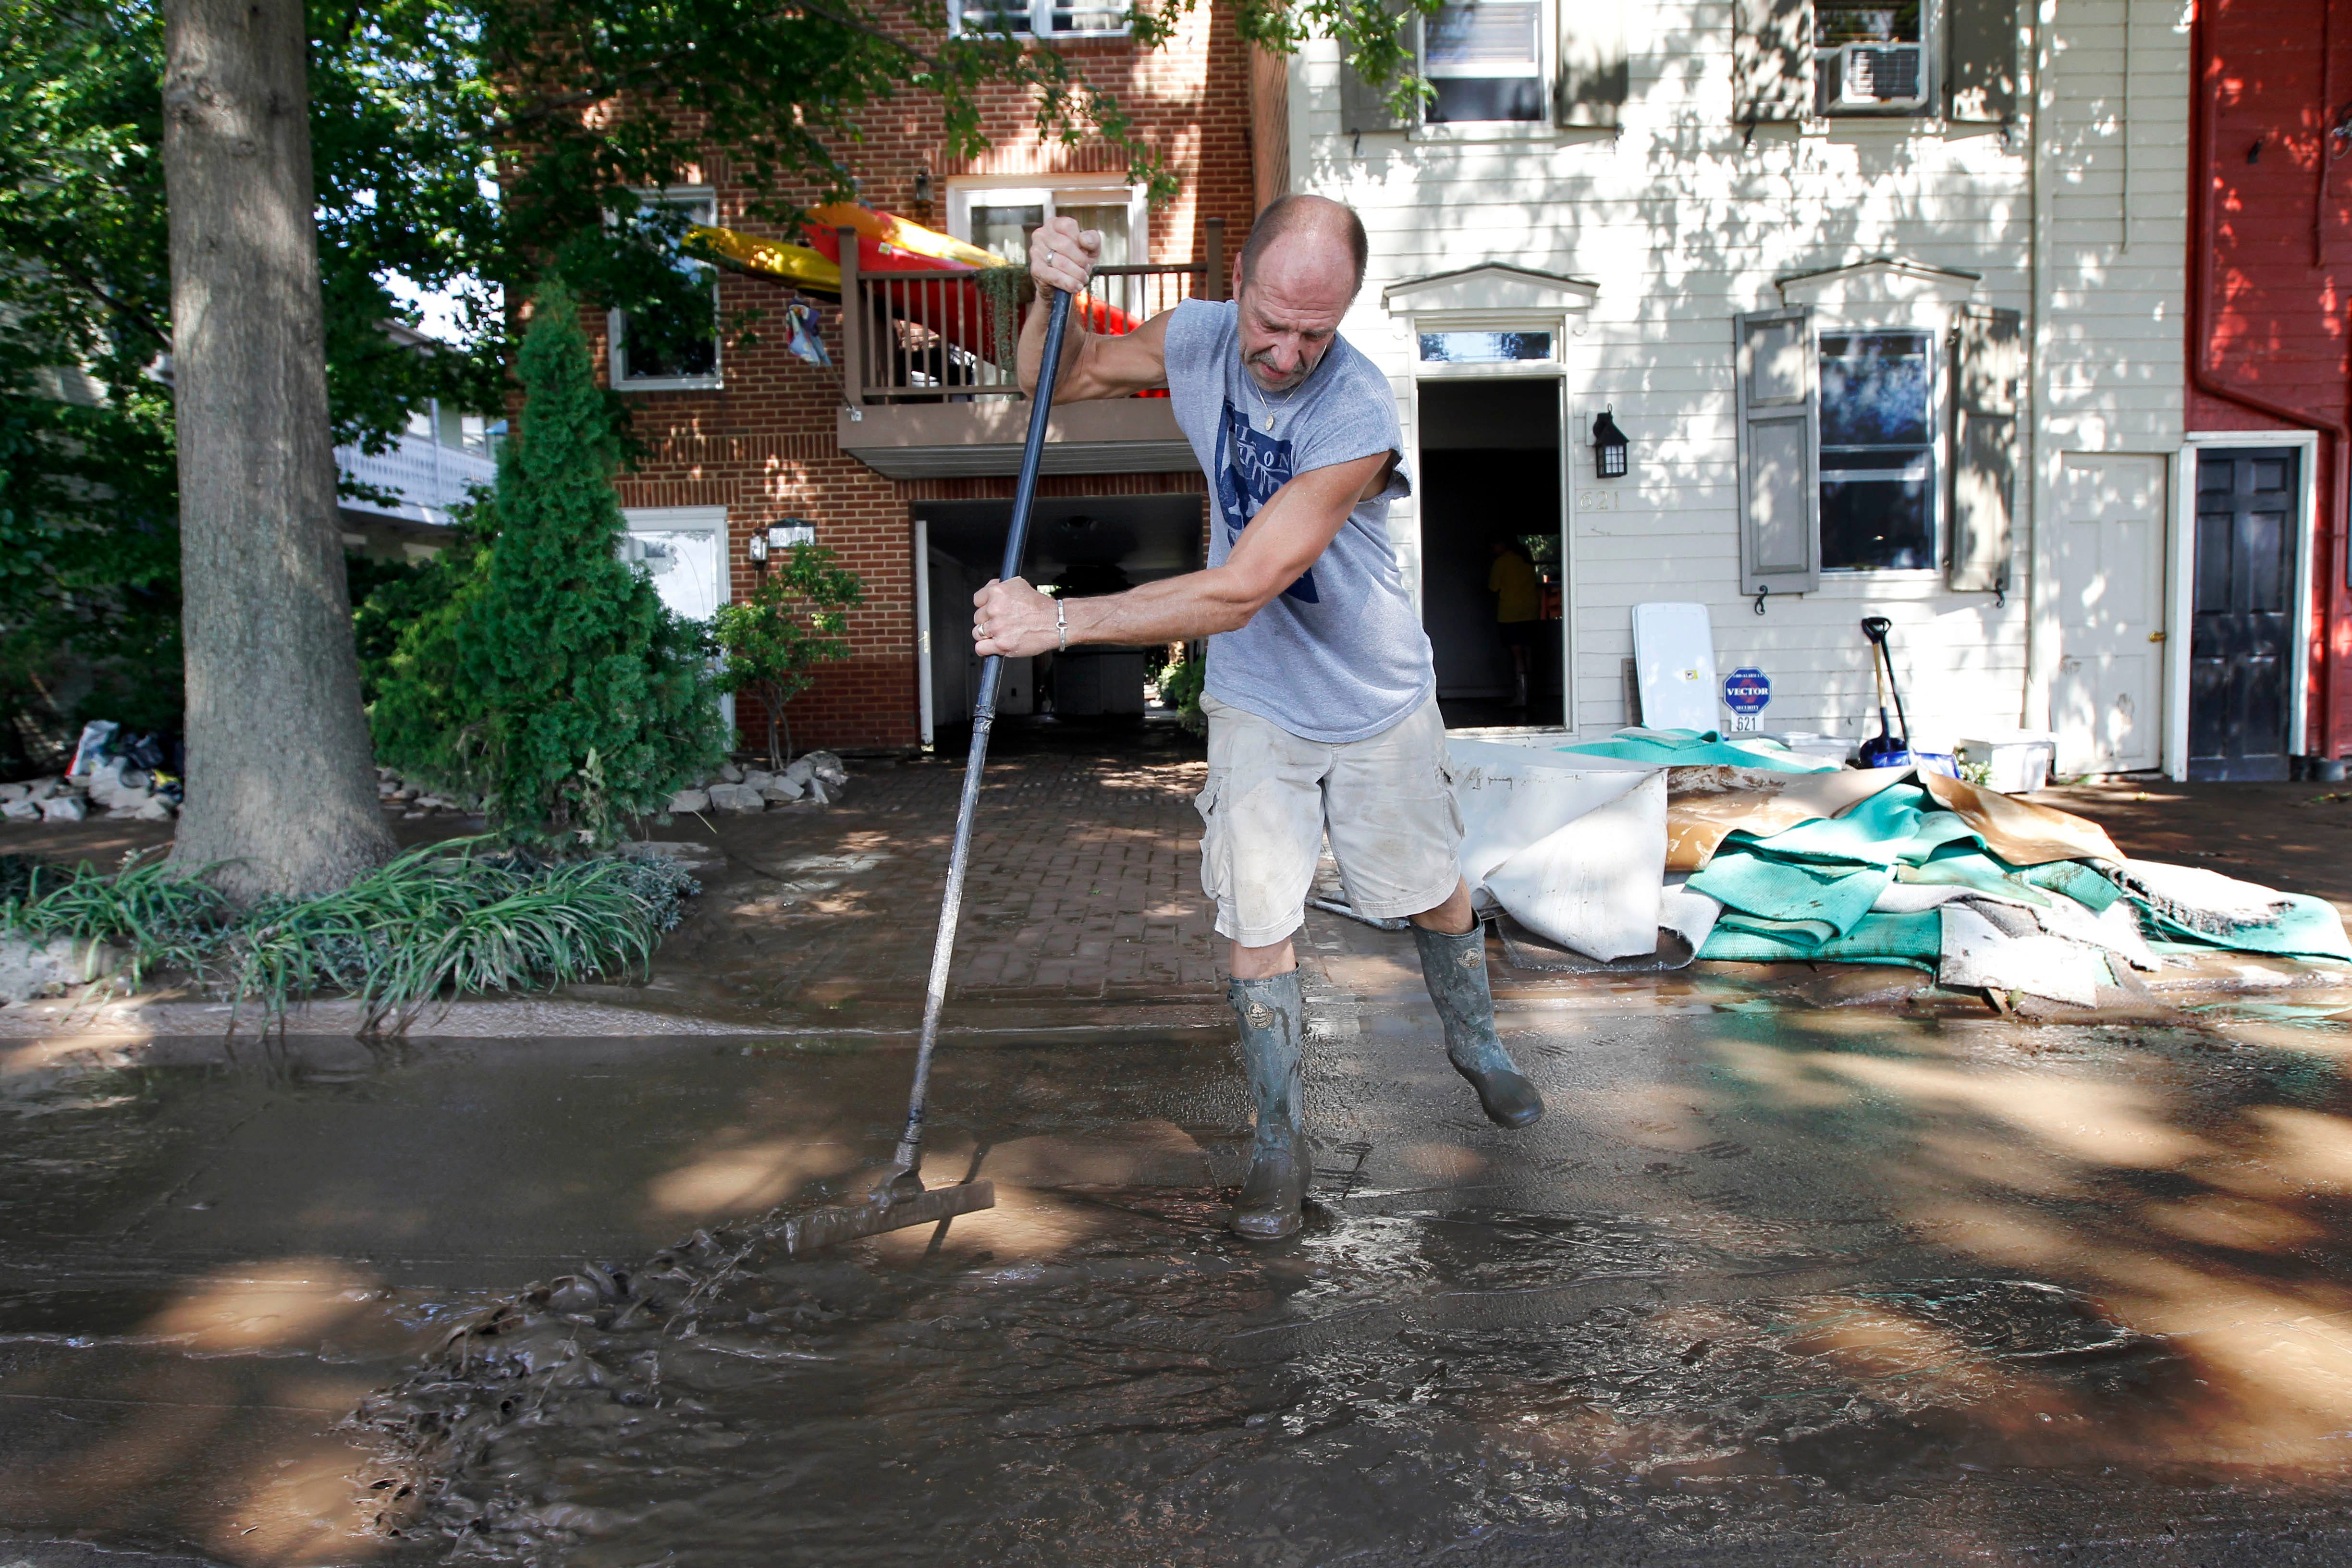 Michael Snyder scrapes away the mud after flooding from the Susquehanna River caused by the remnants of Tropical Storm Lee on Sept. 10, 2011, in Harrisburg, Pa.